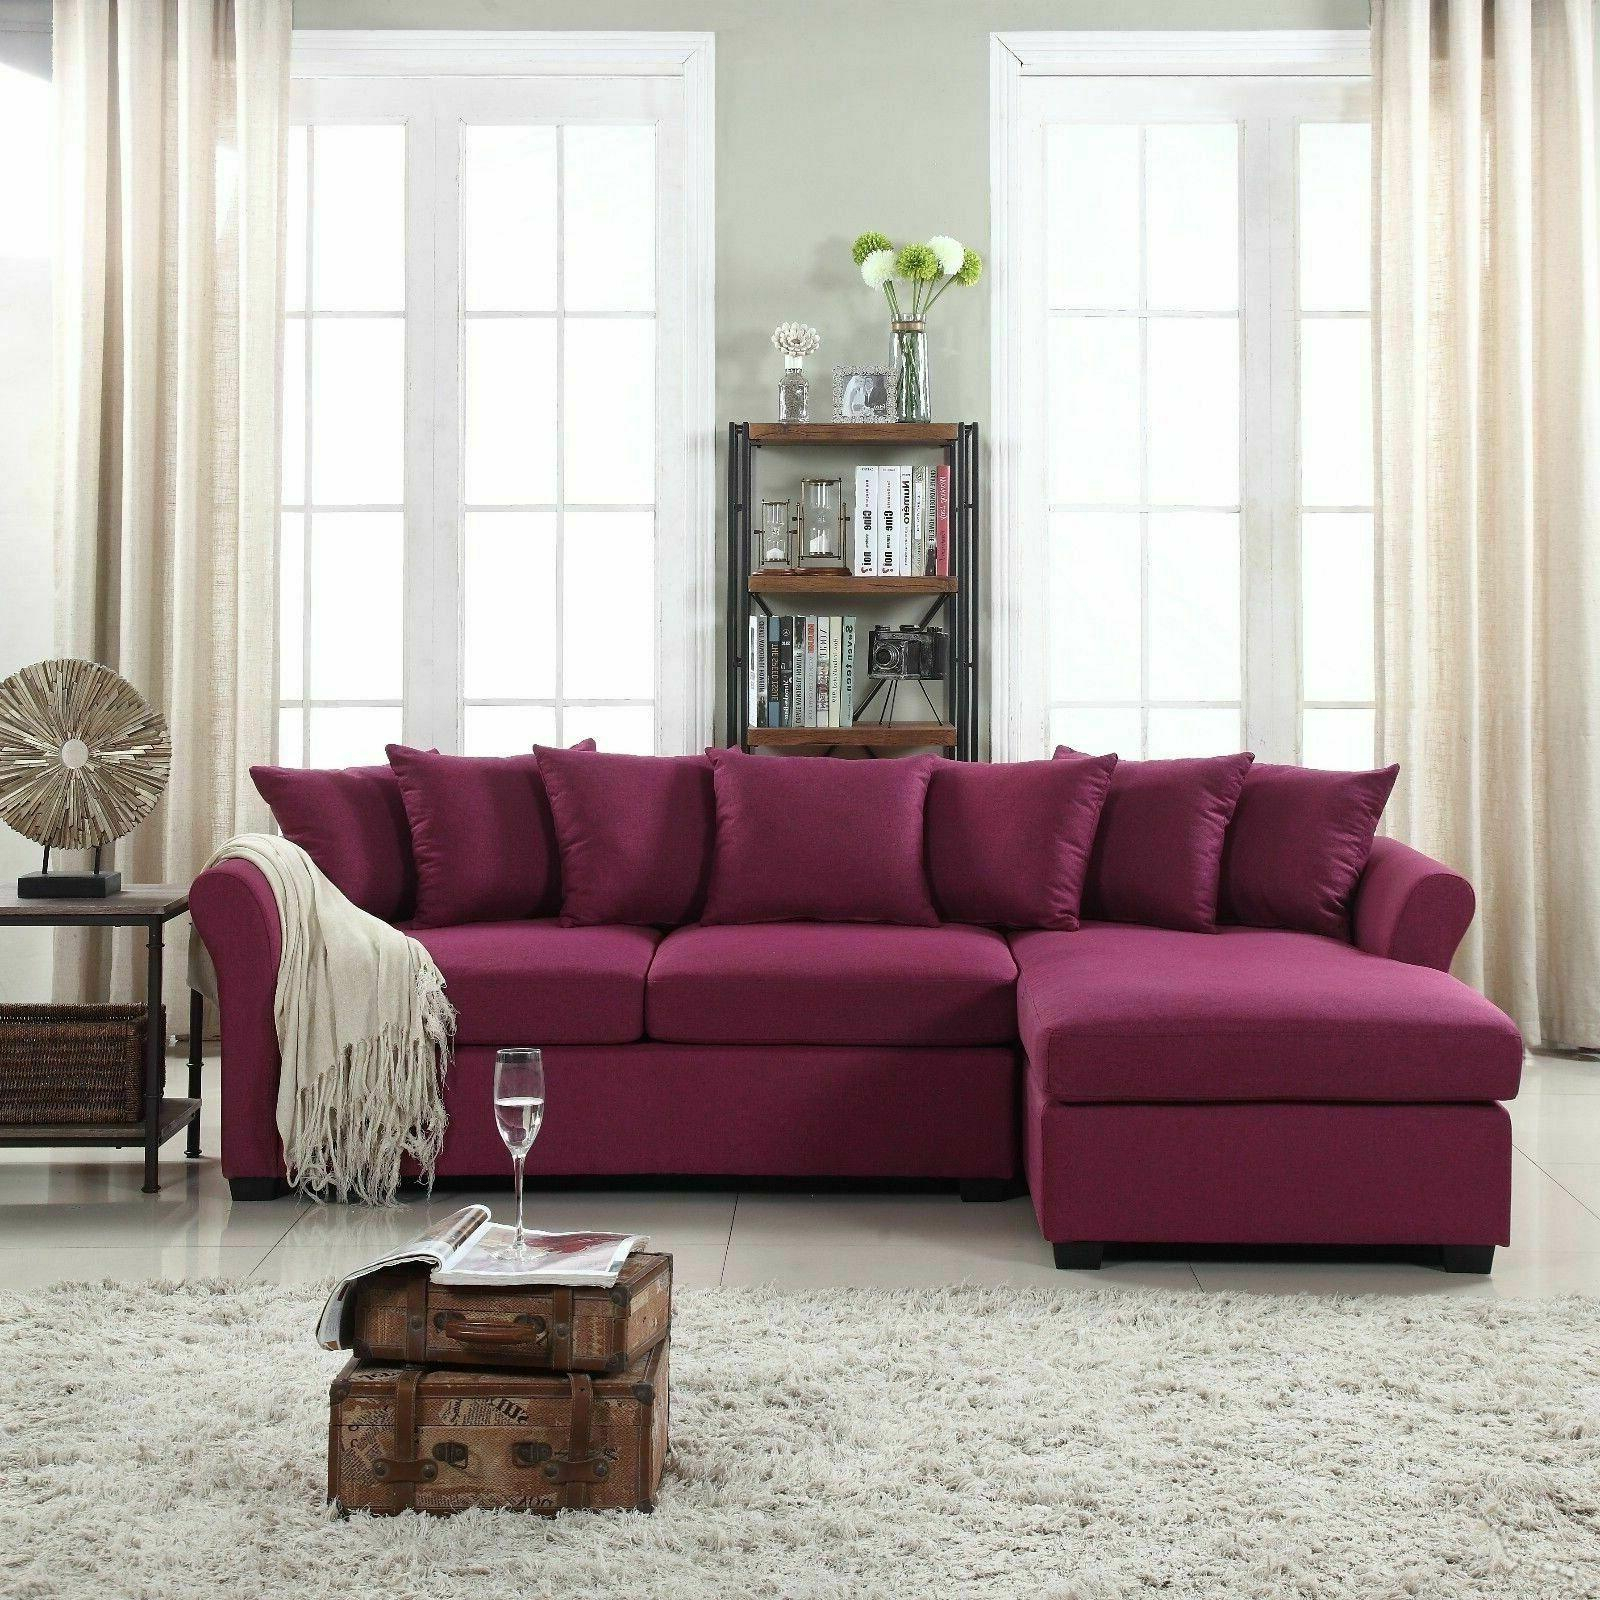 Modern Large Linen Sectional Sofa With Extra Wide Intended For Extra Large Sectional Sofas (View 1 of 15)